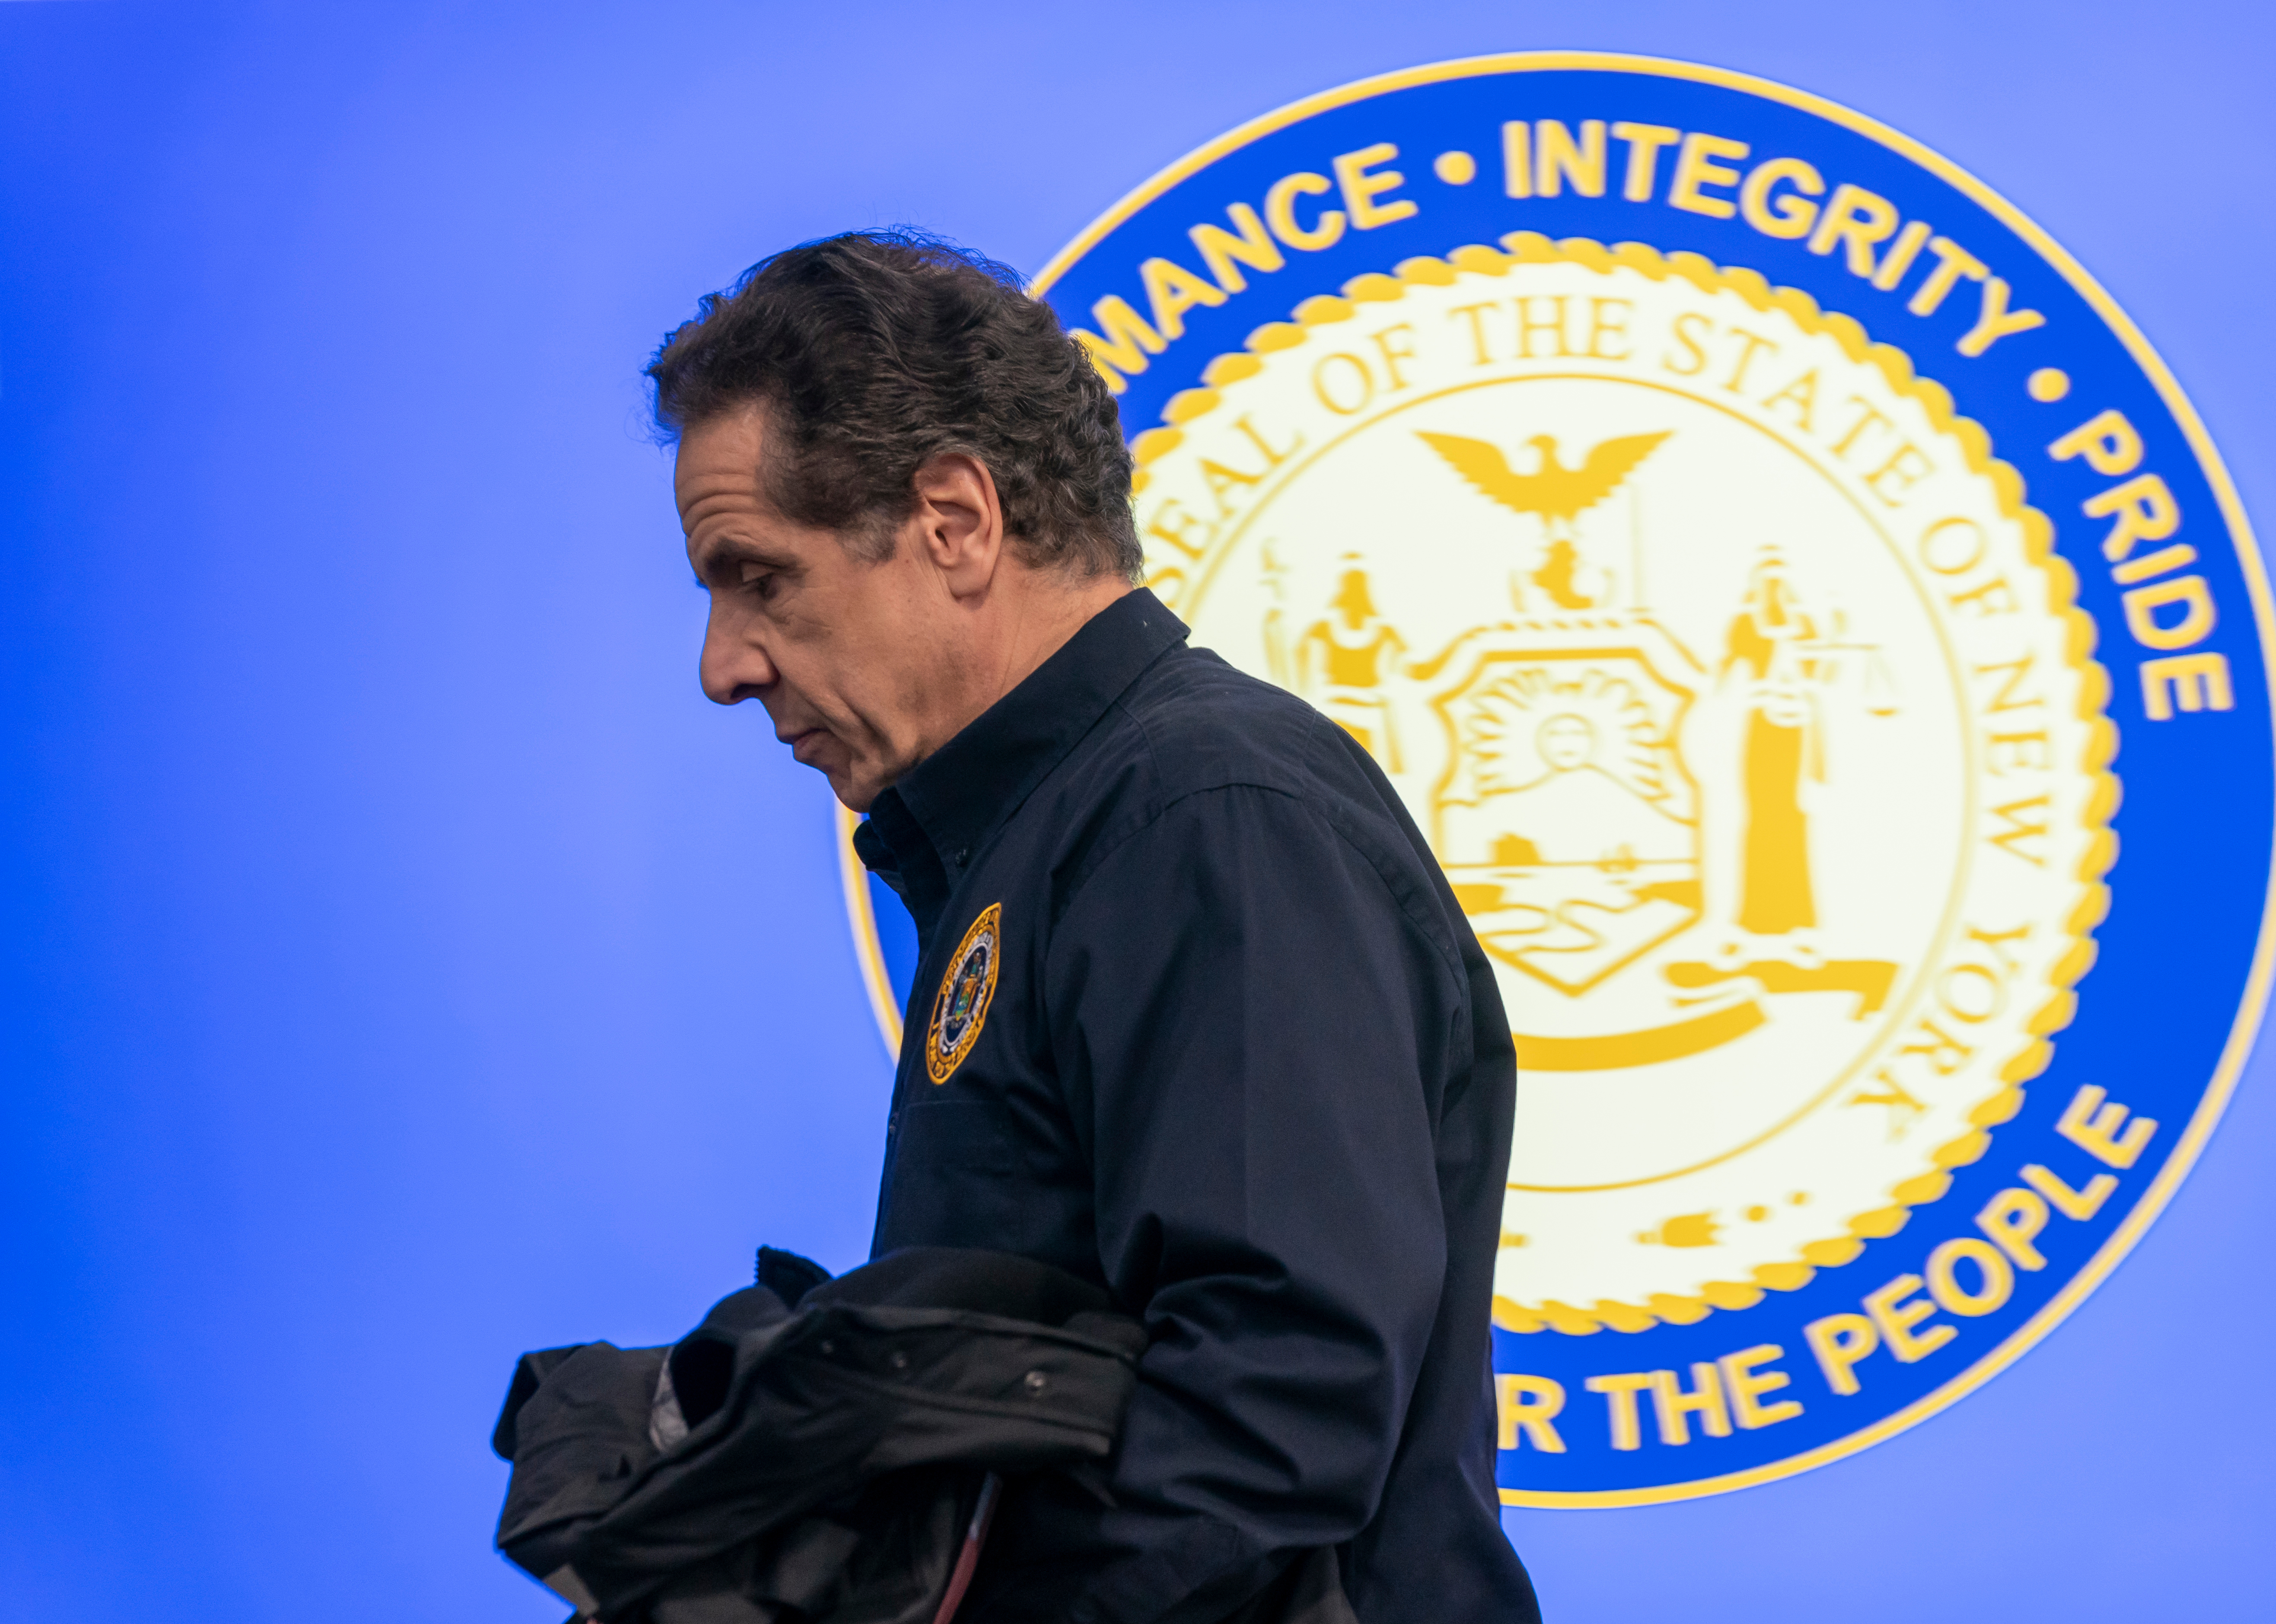 New York, NY - March 24, 2020: Governor Andrew Cuomo speaks to media during daily briefing on COVID-19 pandemic at Jacob Javits Convention Center.